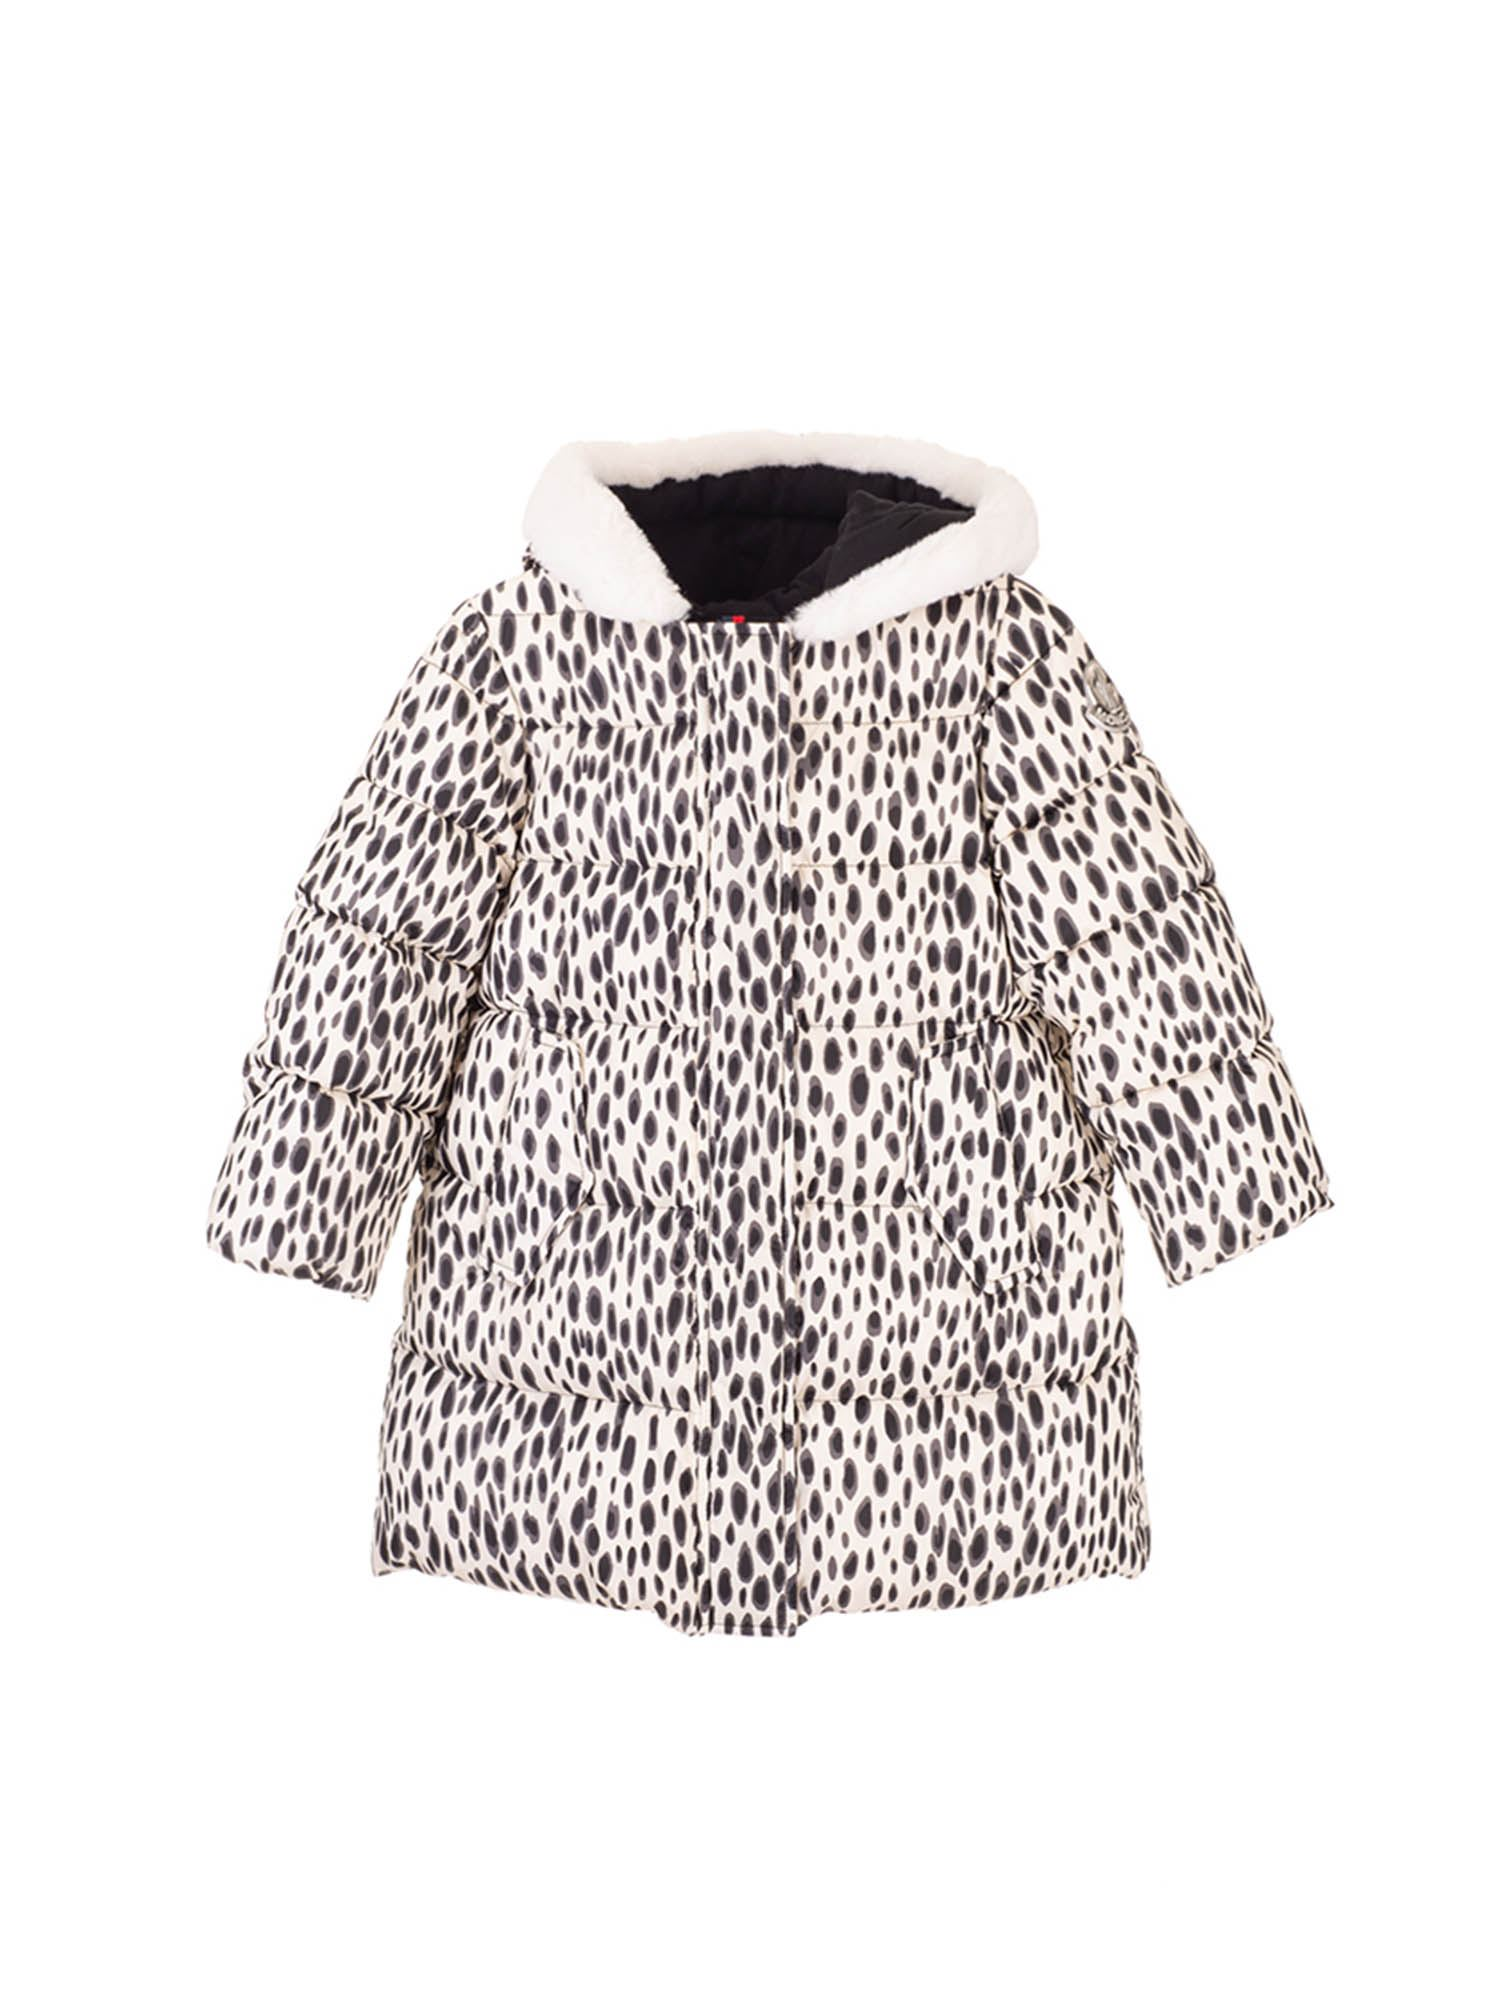 Moncler Jr MONCLER KIDS ANIMALIER DOWN JACKET IN WHITE